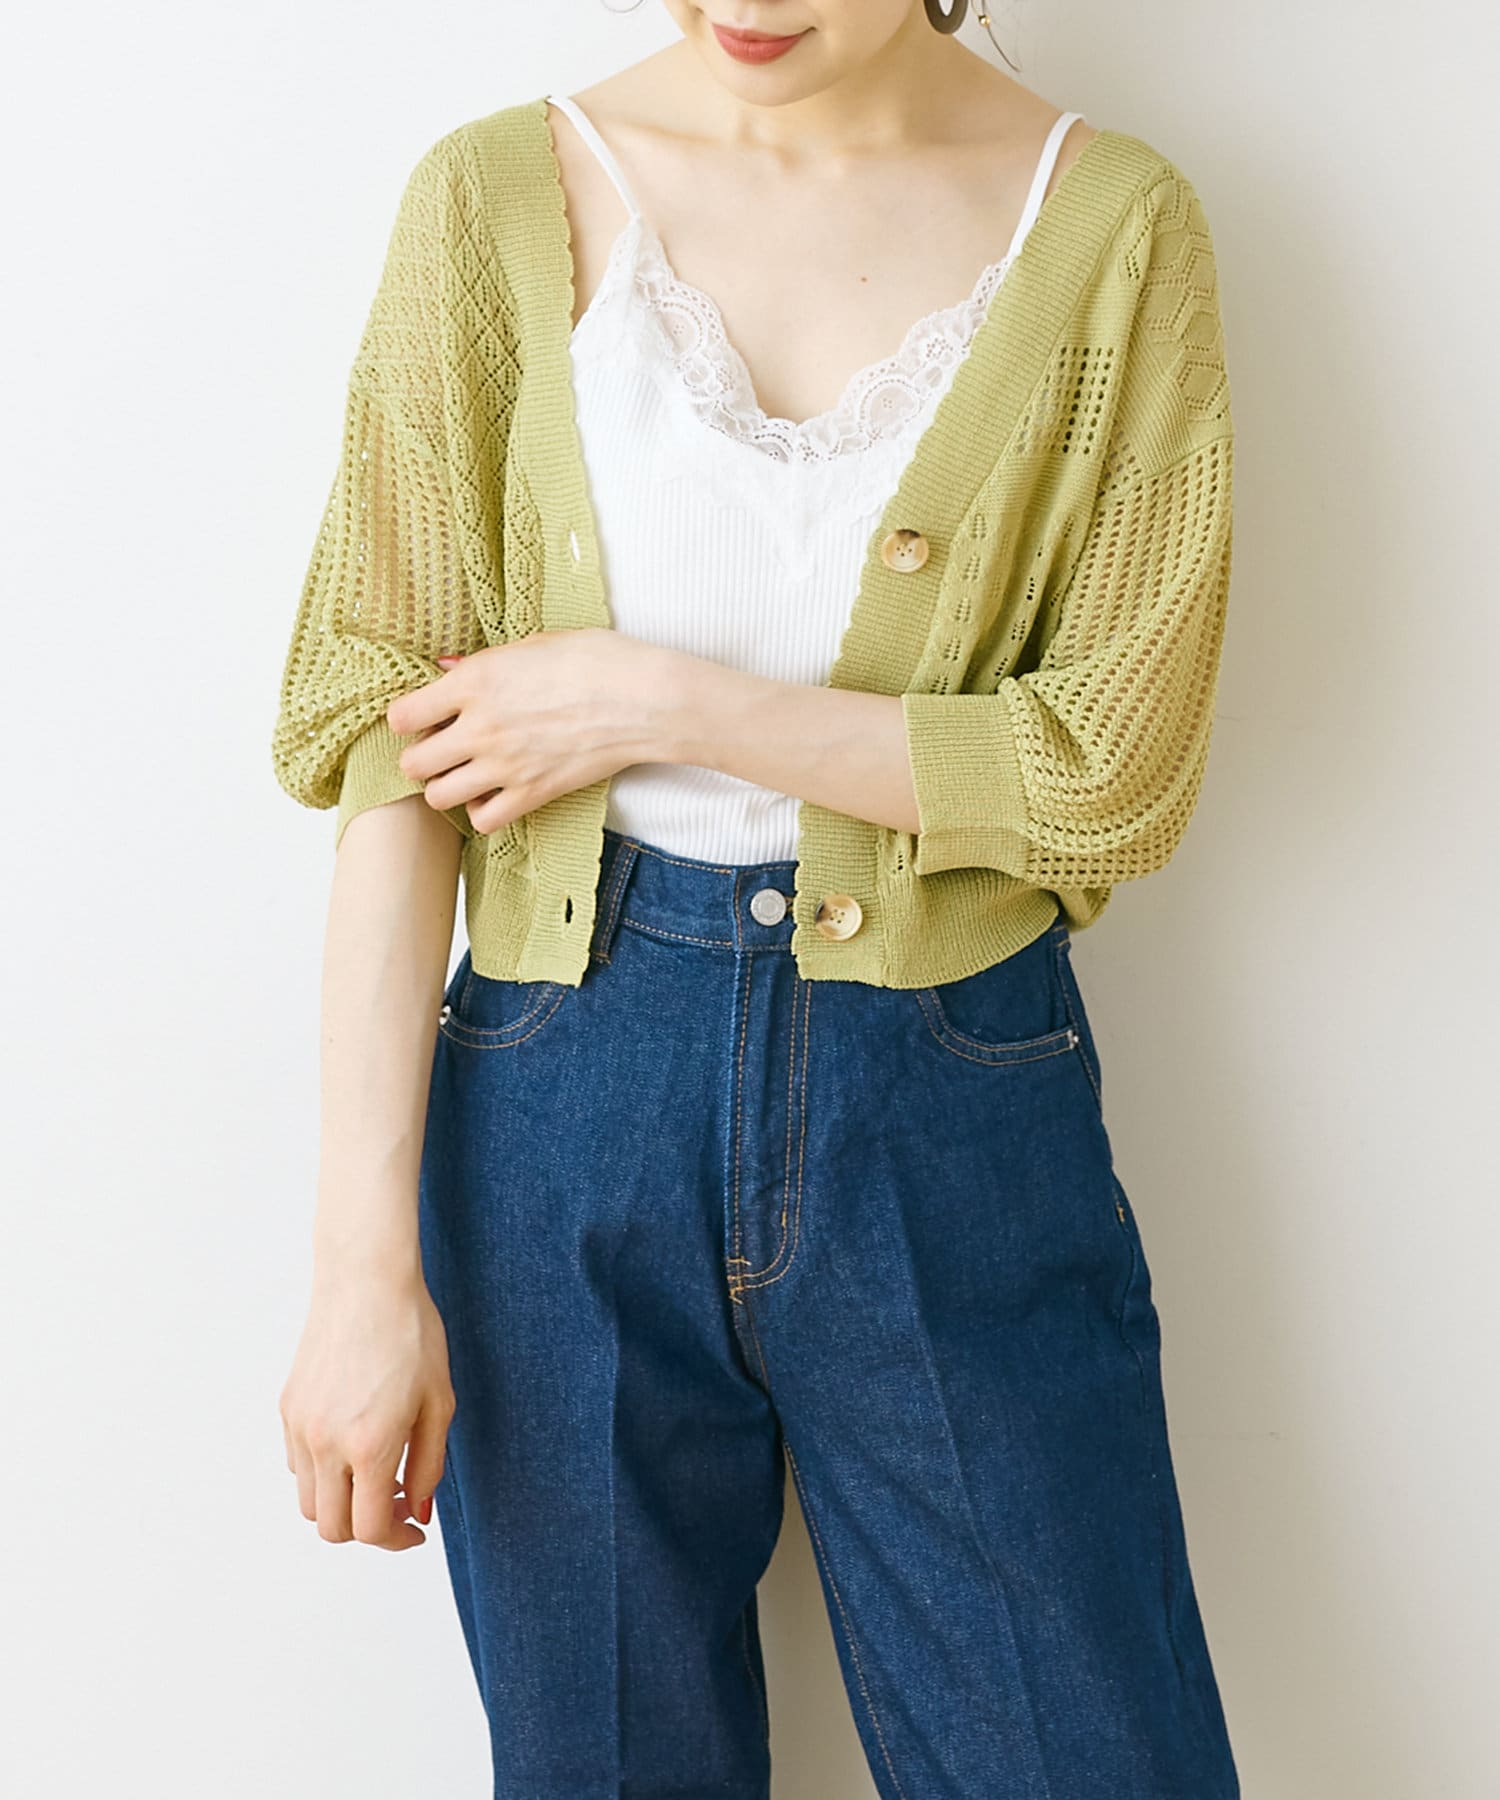 NICE CLAUP OUTLET(ナイスクラップ アウトレット) 透かしパッチワーク柄ショートカーデ